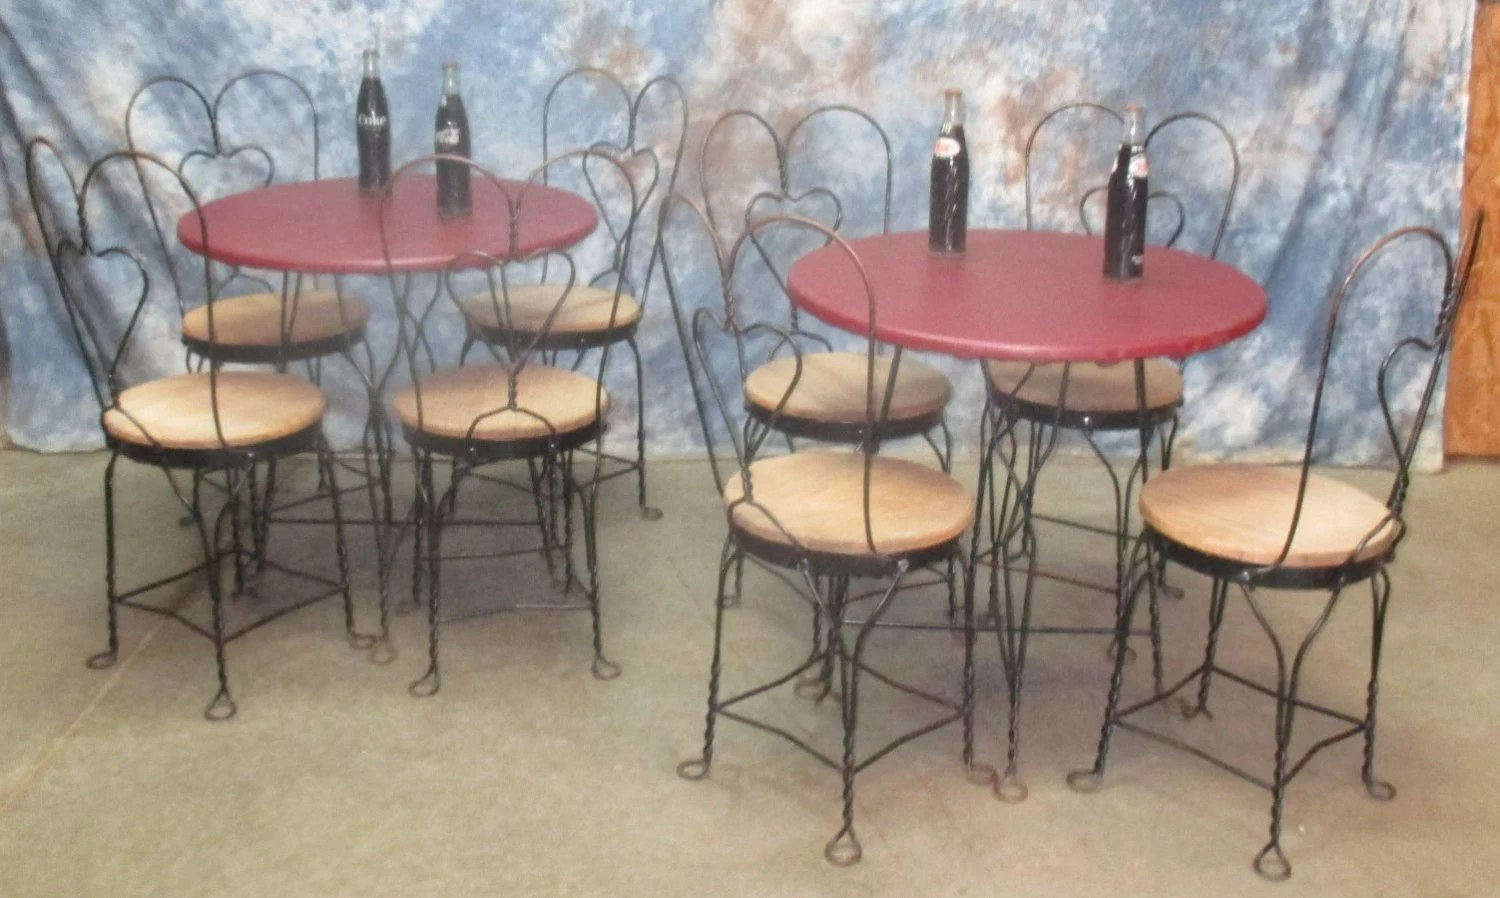 ice cream table and chairs x rocker chair stand kitchen dining